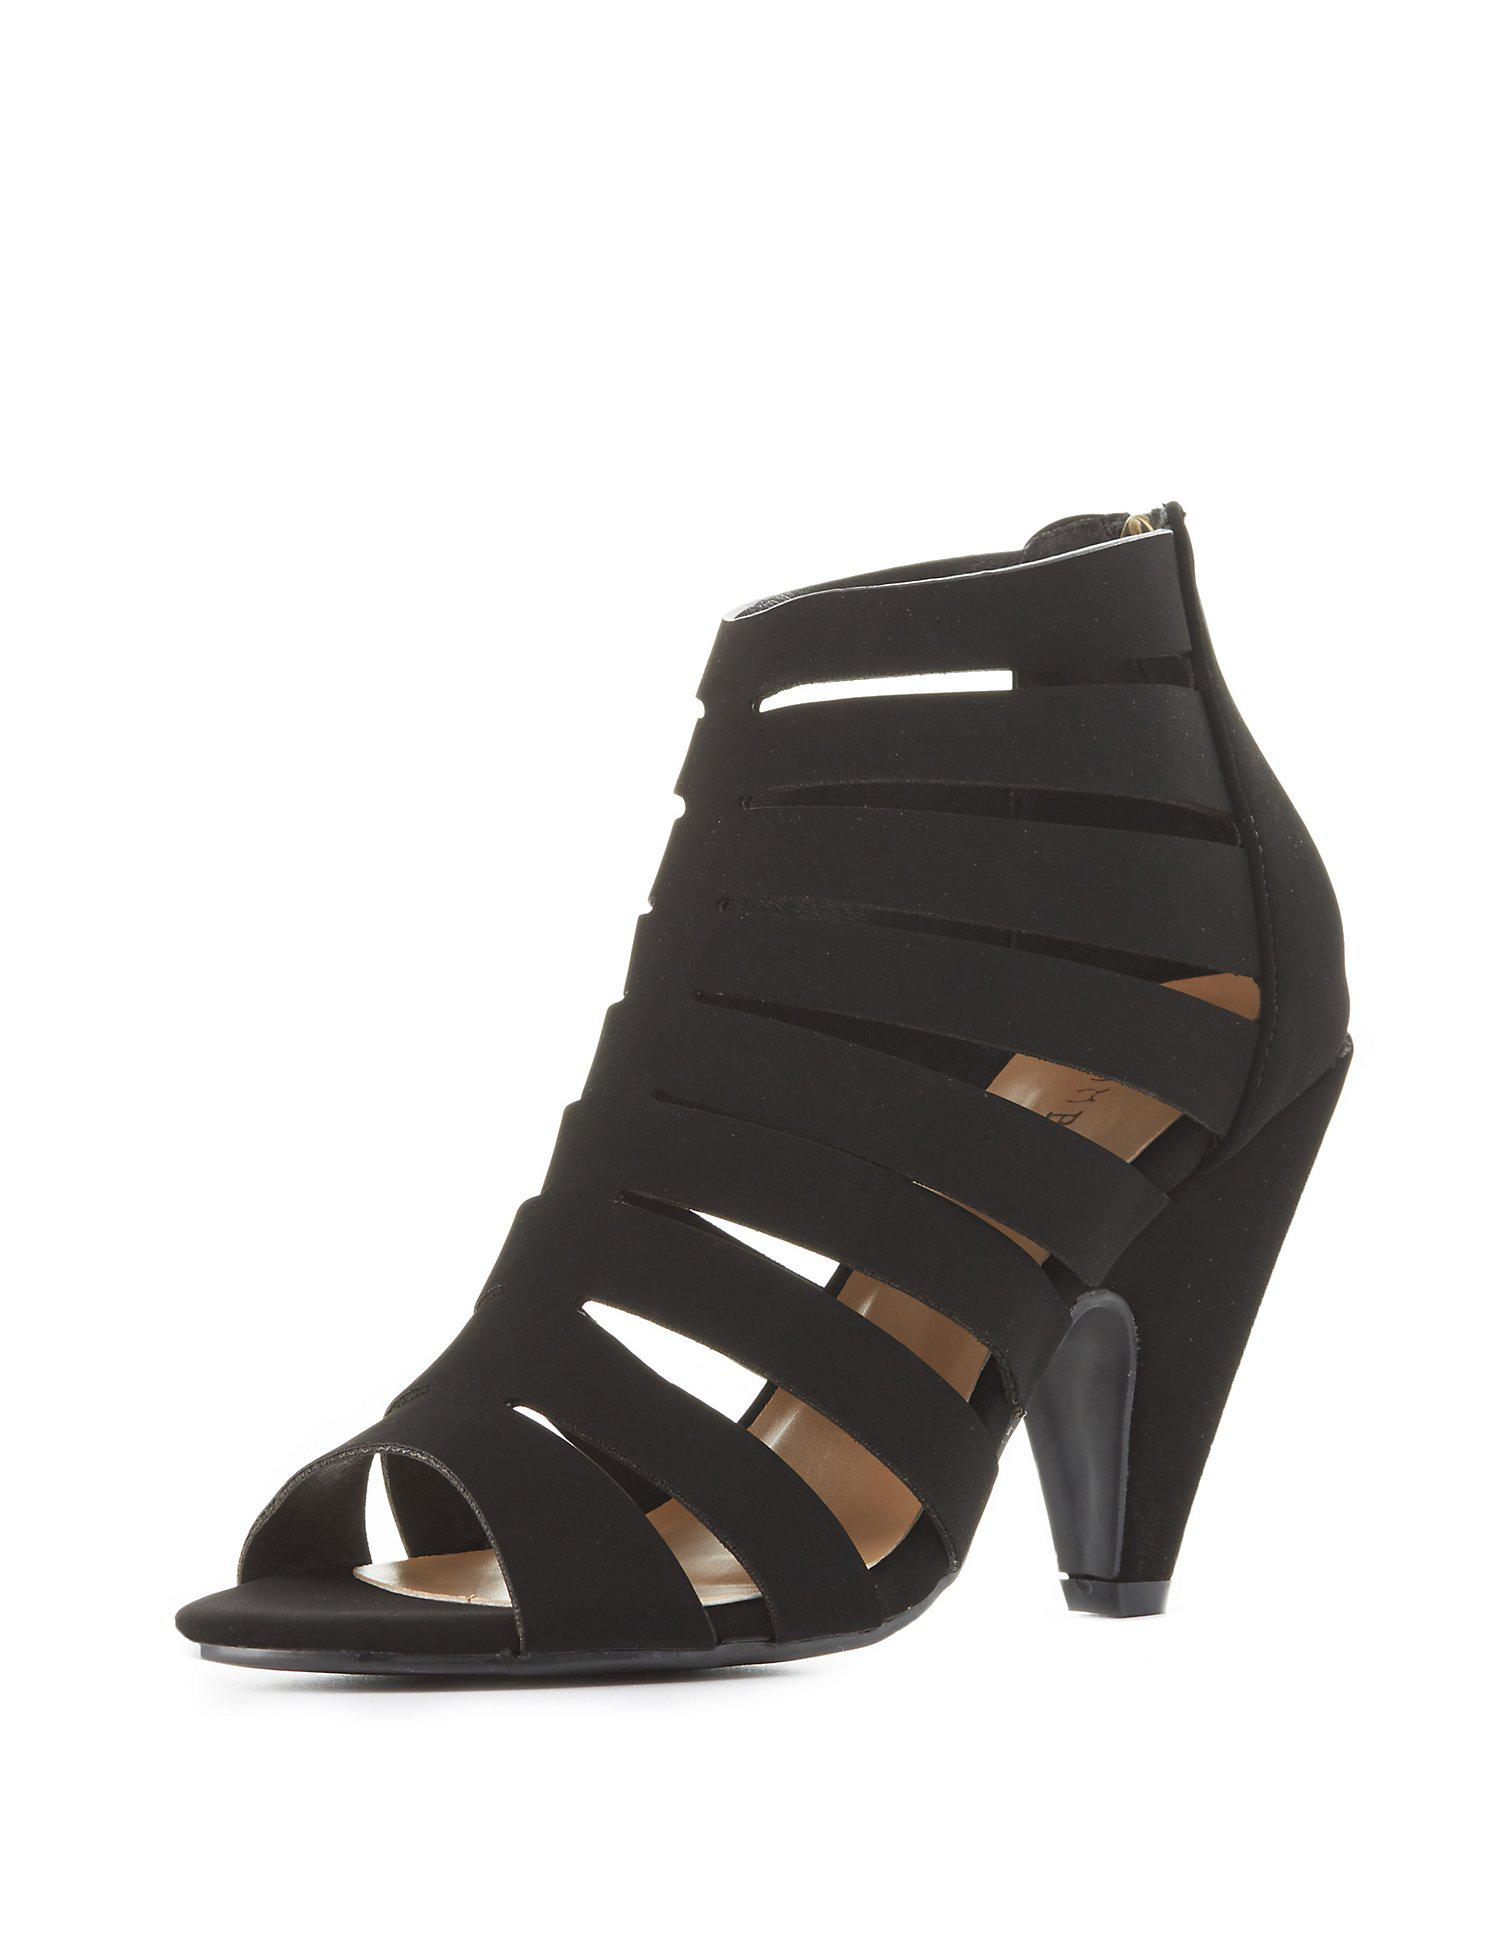 224a36dc9d8c Lyst - Charlotte Russe Bamboo Strappy Caged Sandals in Black